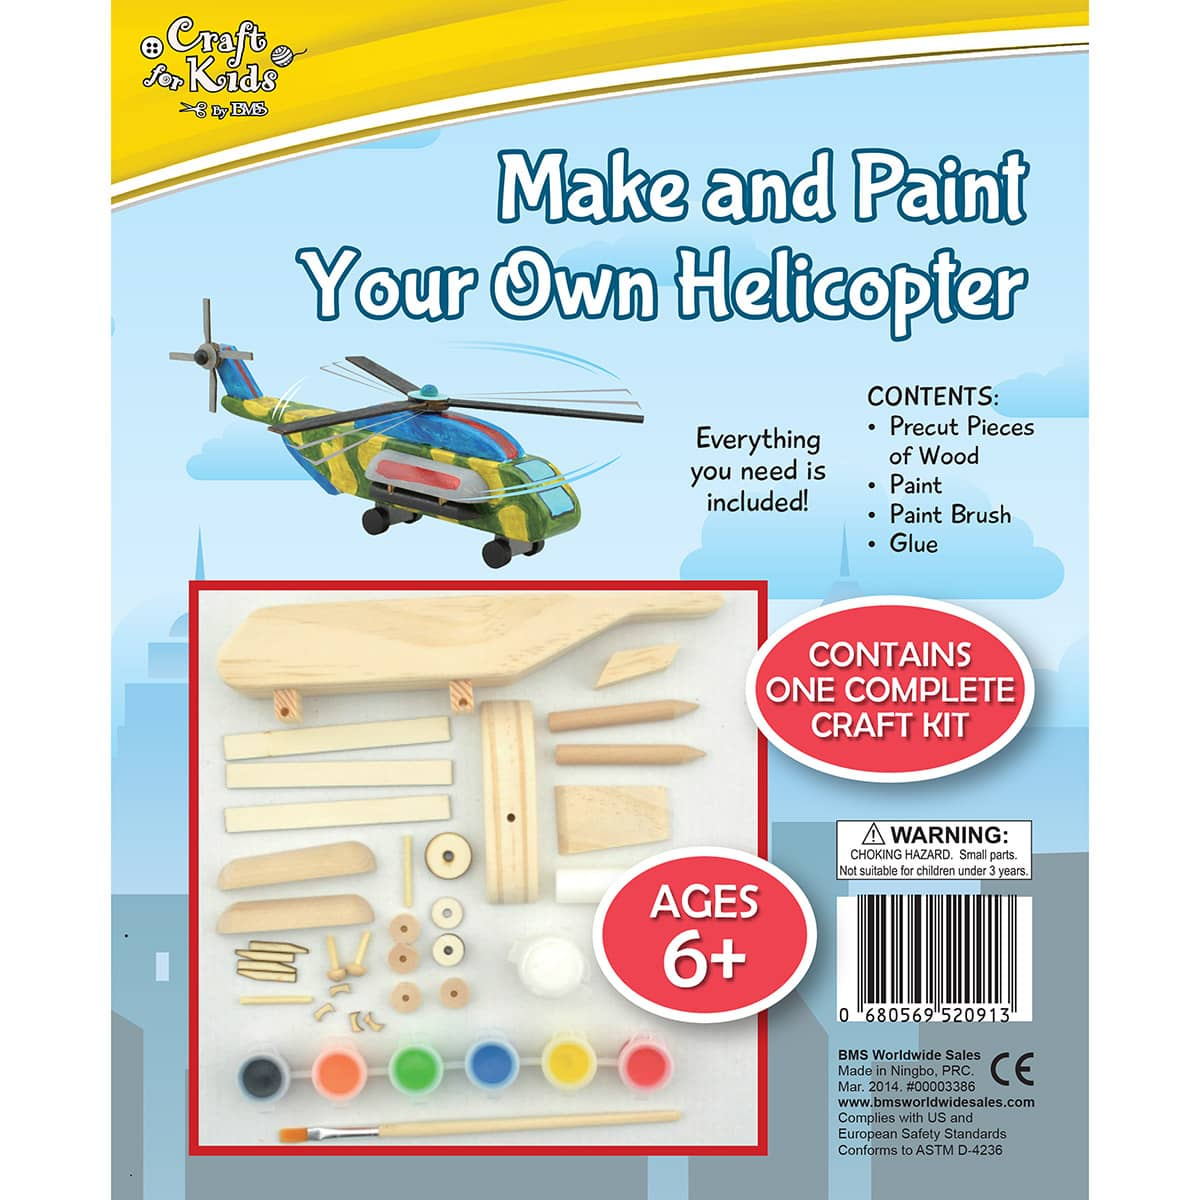 Make And Paint Your Own Wooden Helicopter by Craft for Kids by BMS